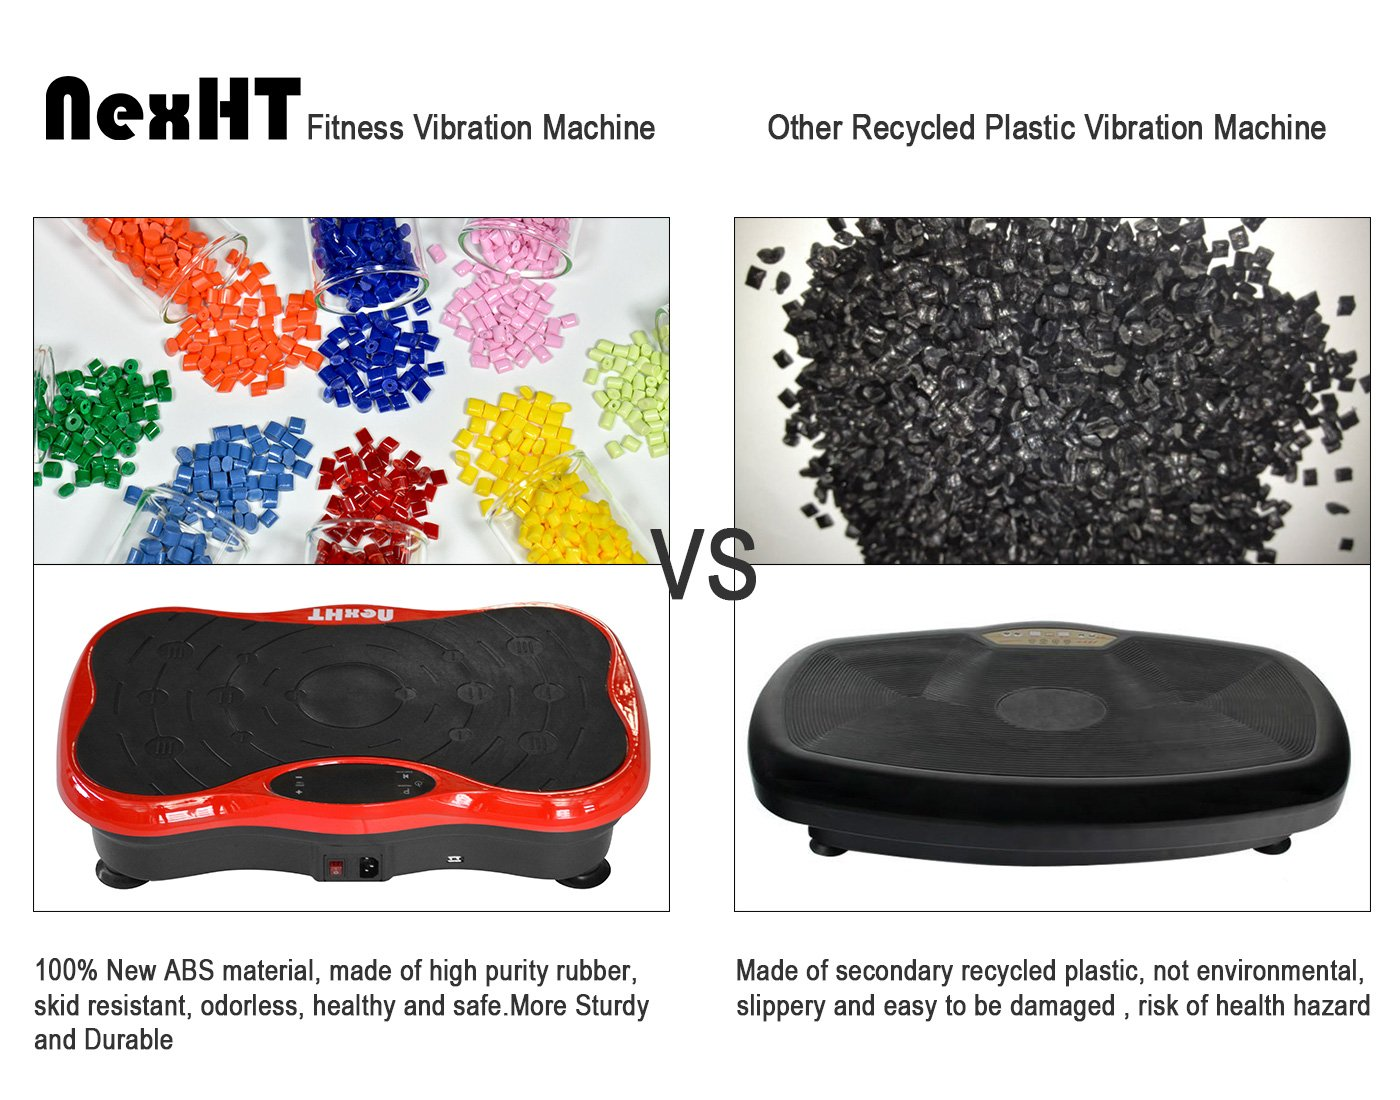 NexHT Mini Fitness Vibration Platform Whole Body Shape Exercise Machine with Built-in USB Speaker(89012A), Fit Vibration Plate Massage Workout Trainer with Two Bands &Remote,Max User Weight 330lbs.Red by NexHT (Image #5)